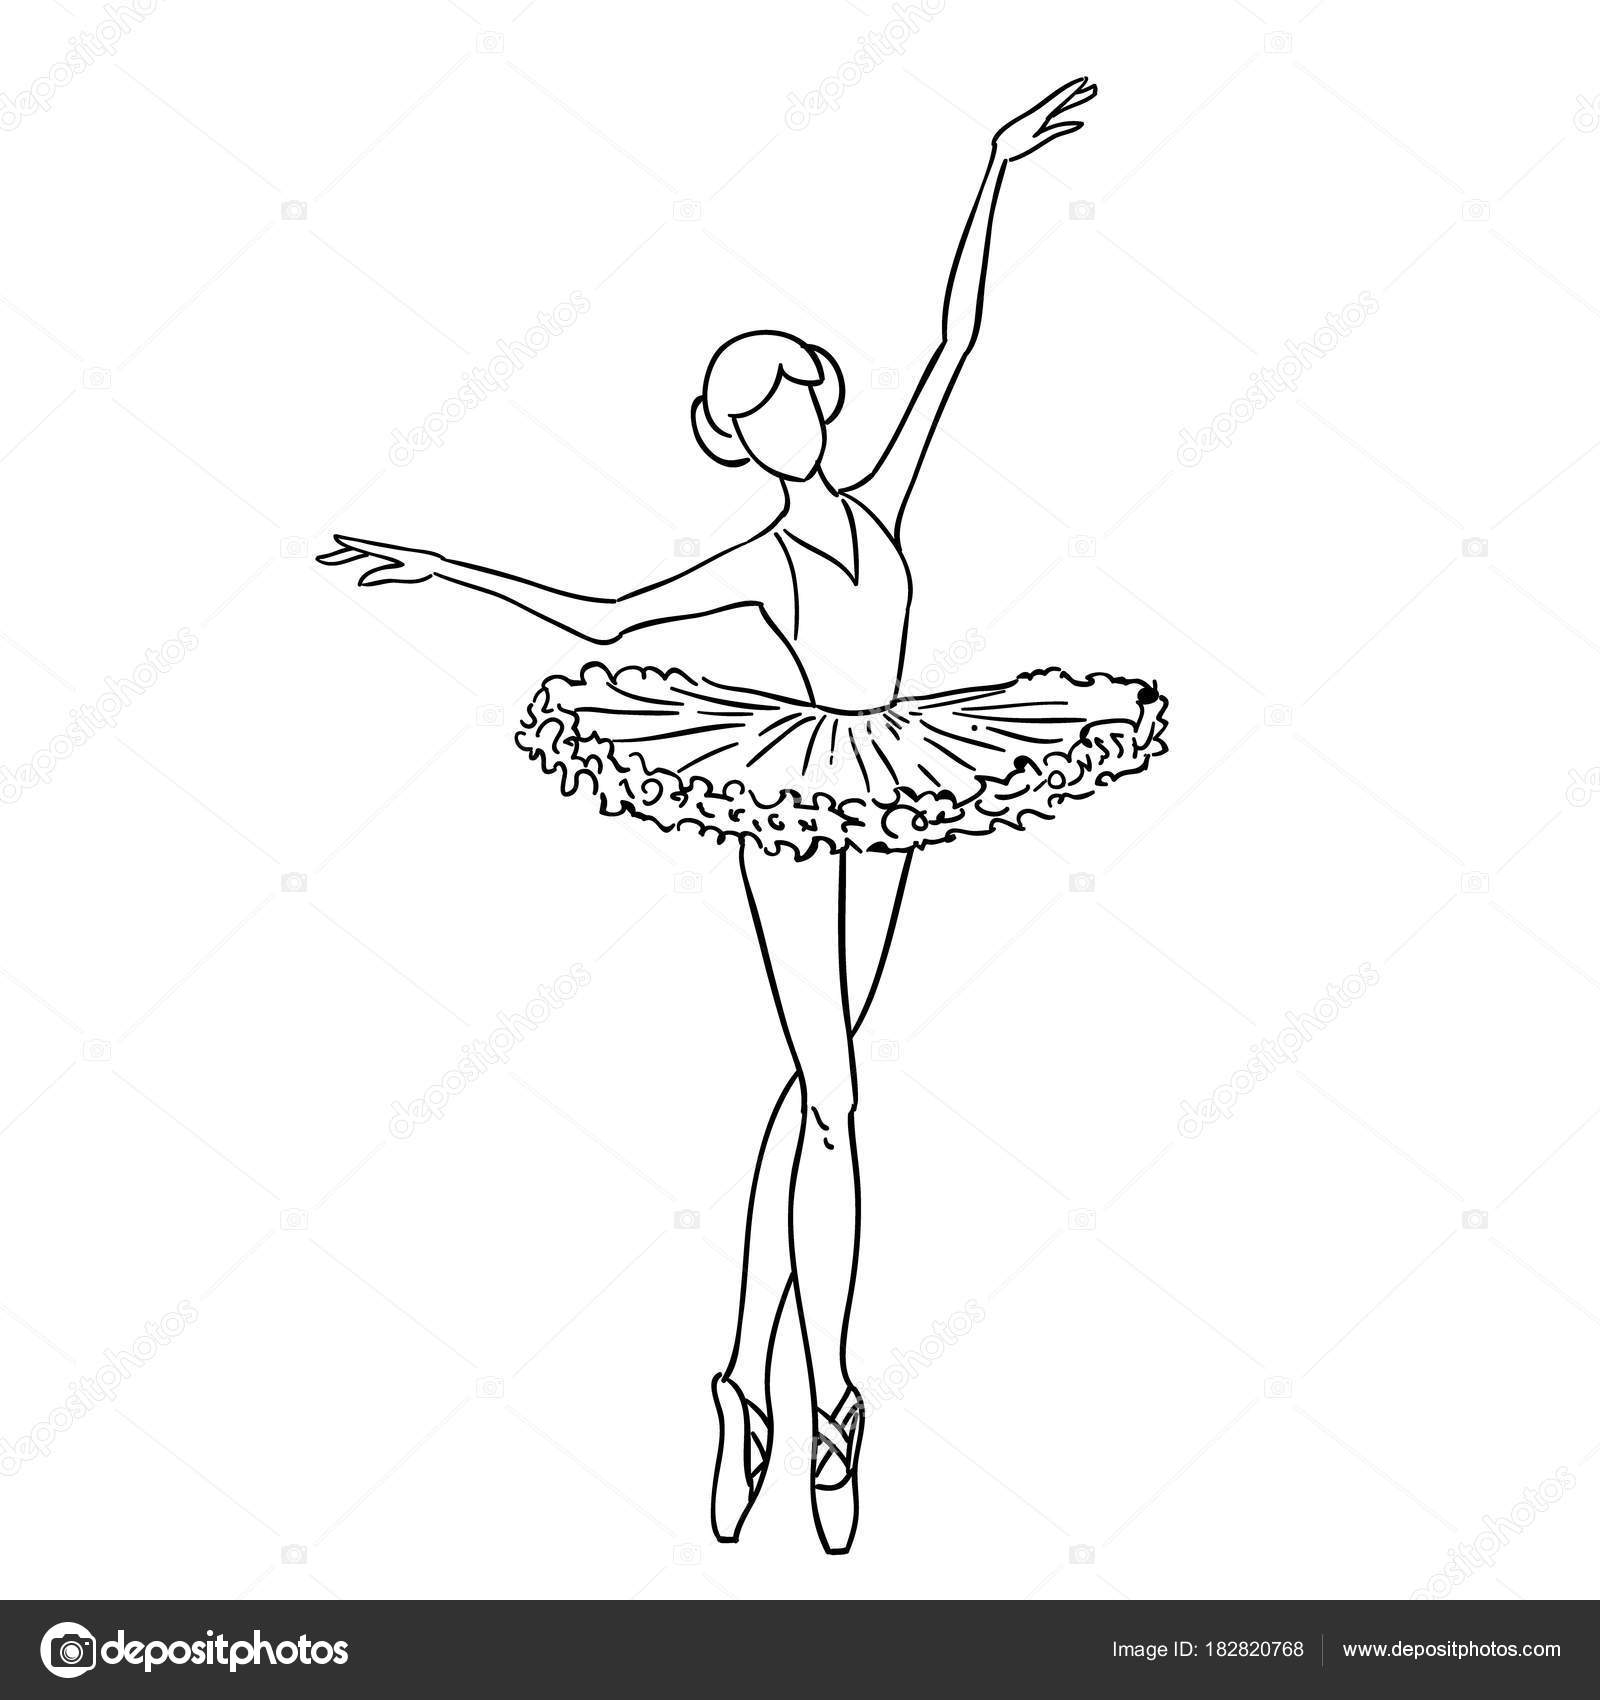 Illustration Of A Sketch Contour Drawing Of A Girl Ballerina